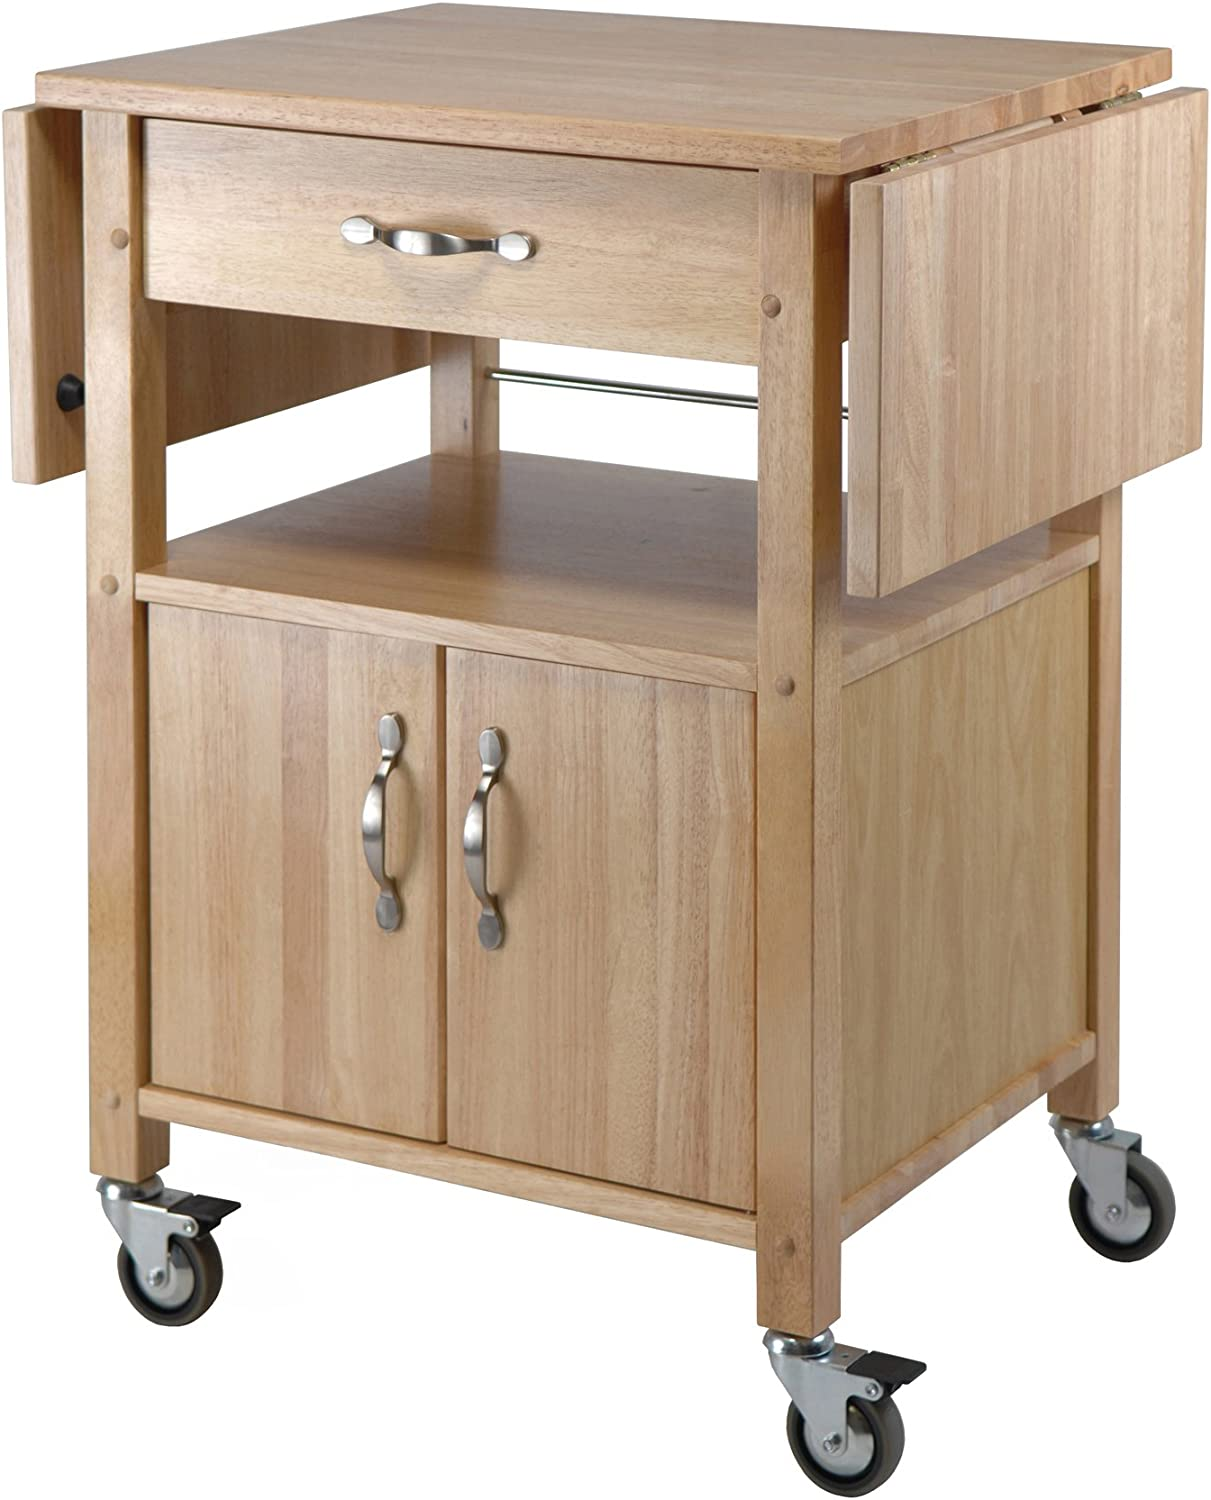 Winsome Wood Drop Leaf Kitchen Cart Kitchen Islands Carts